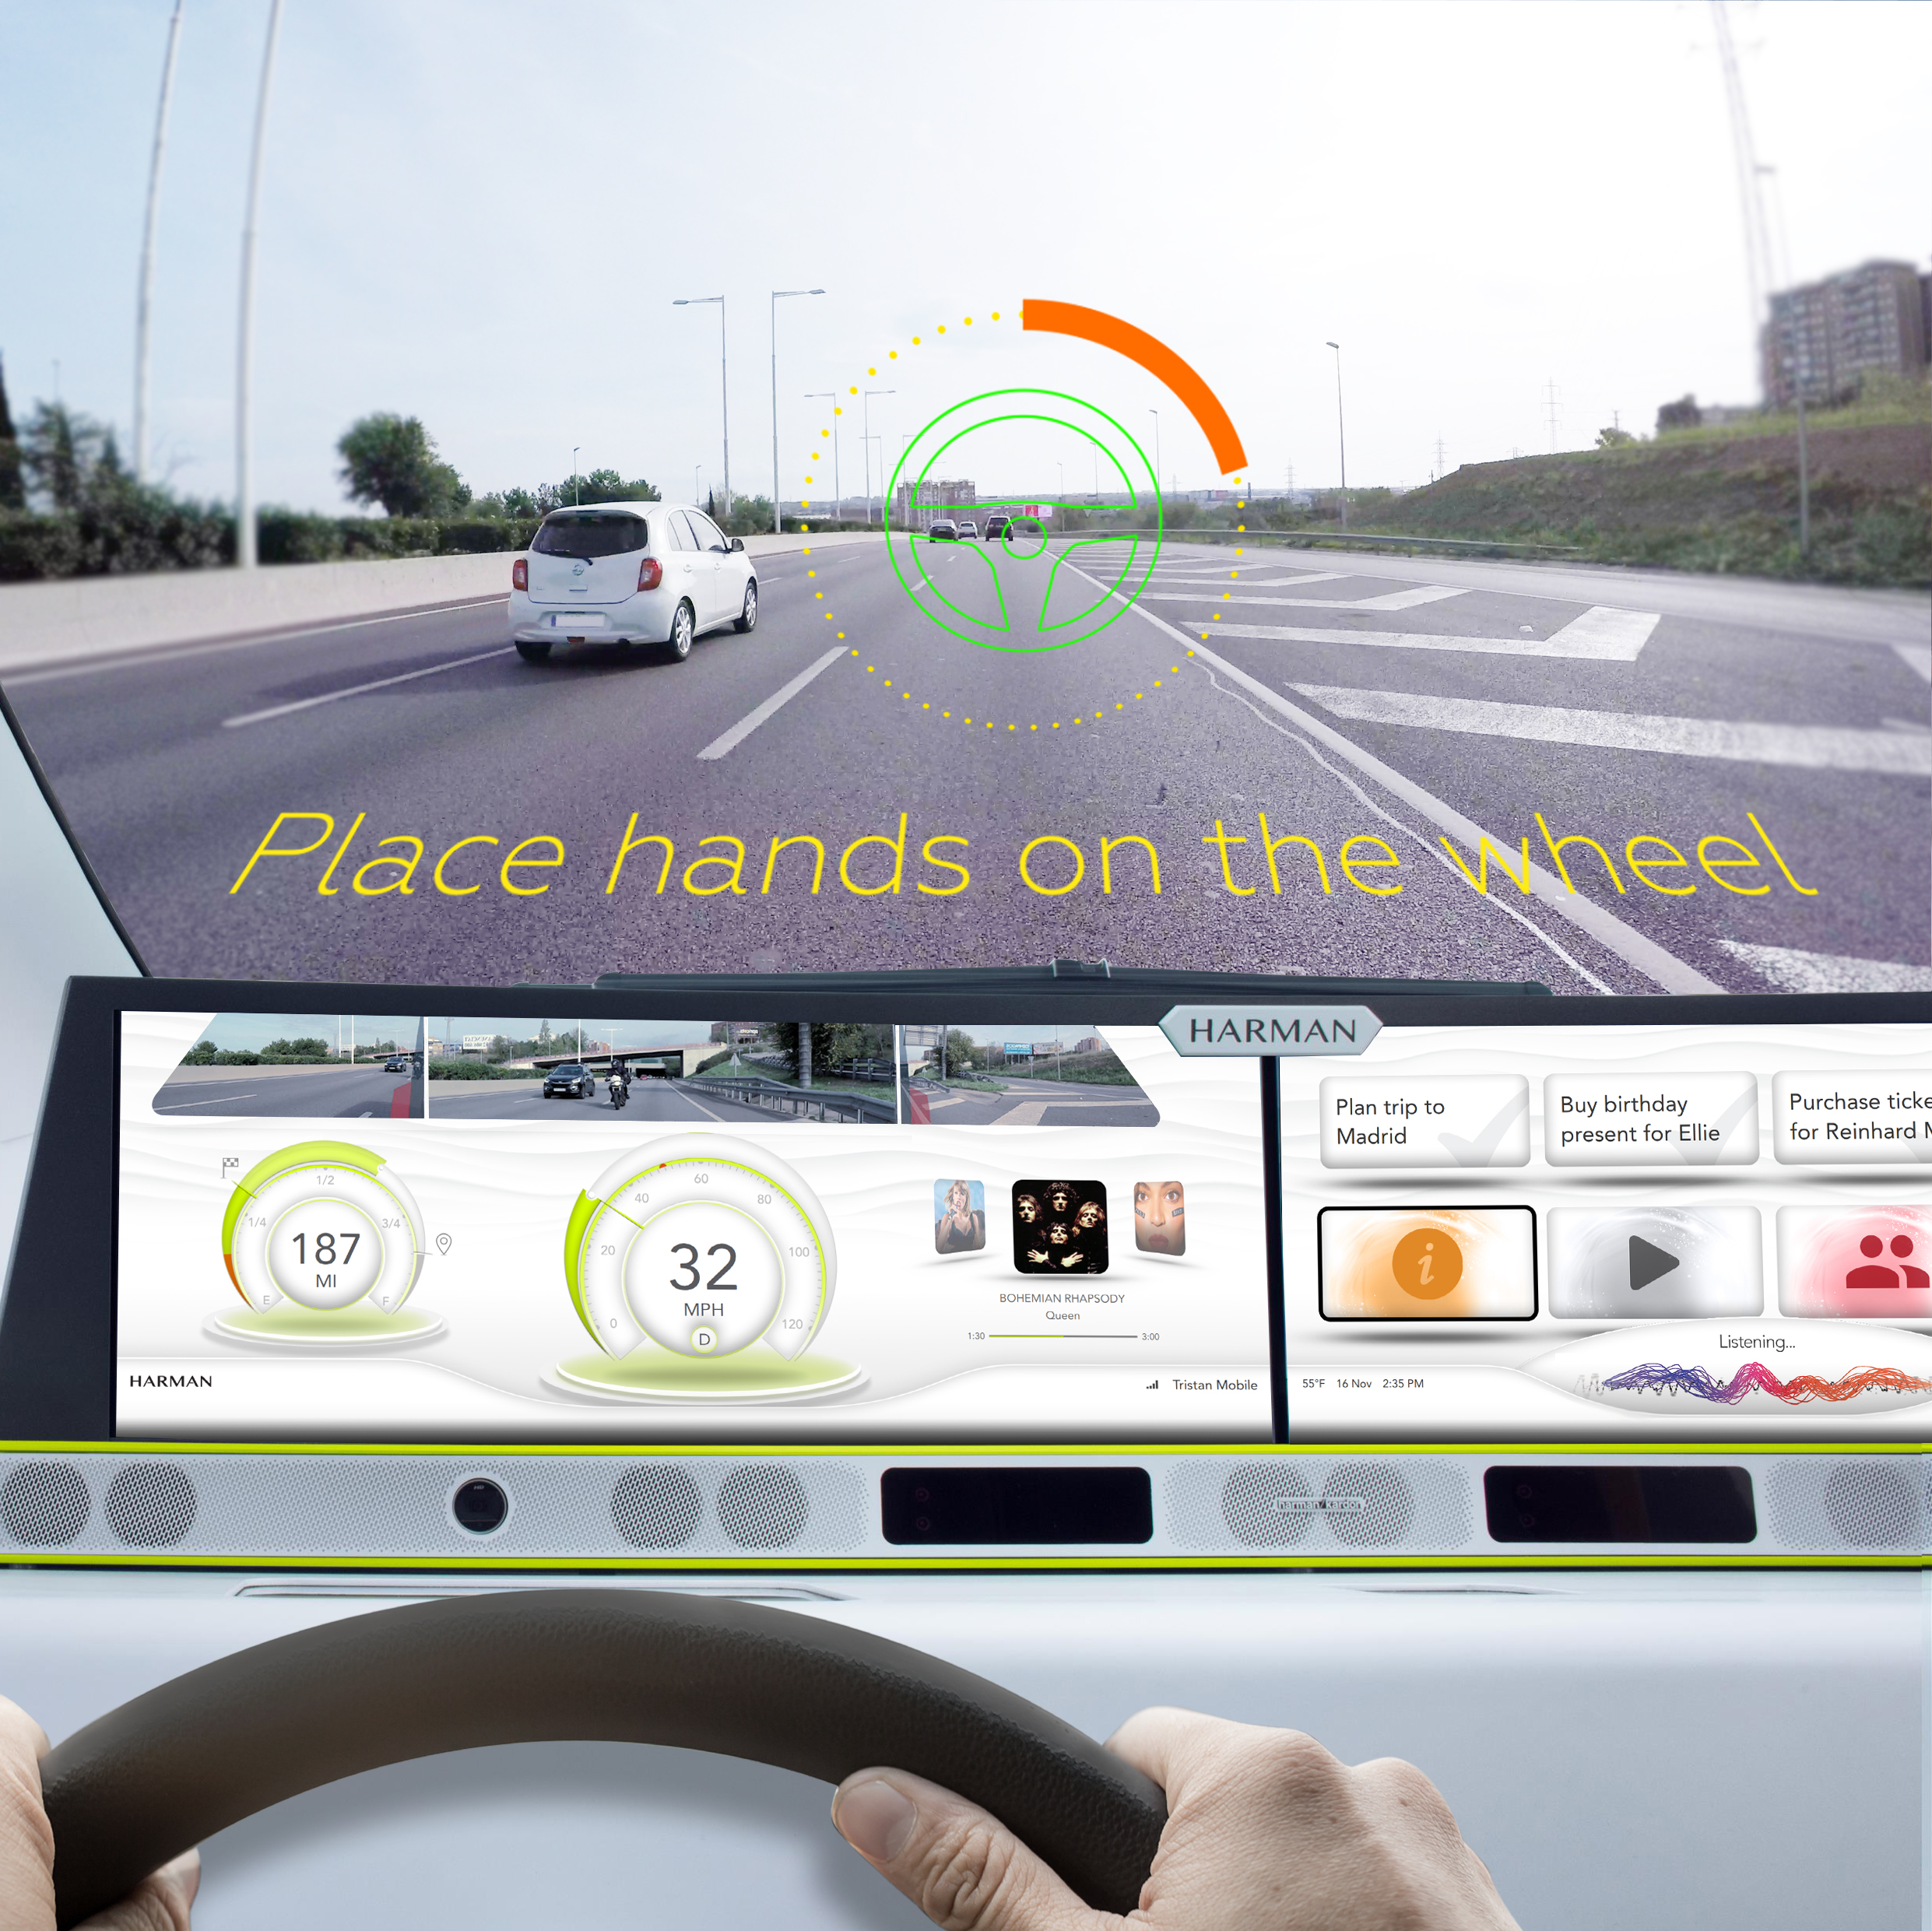 Harman driver interaction with autonomous vehicle